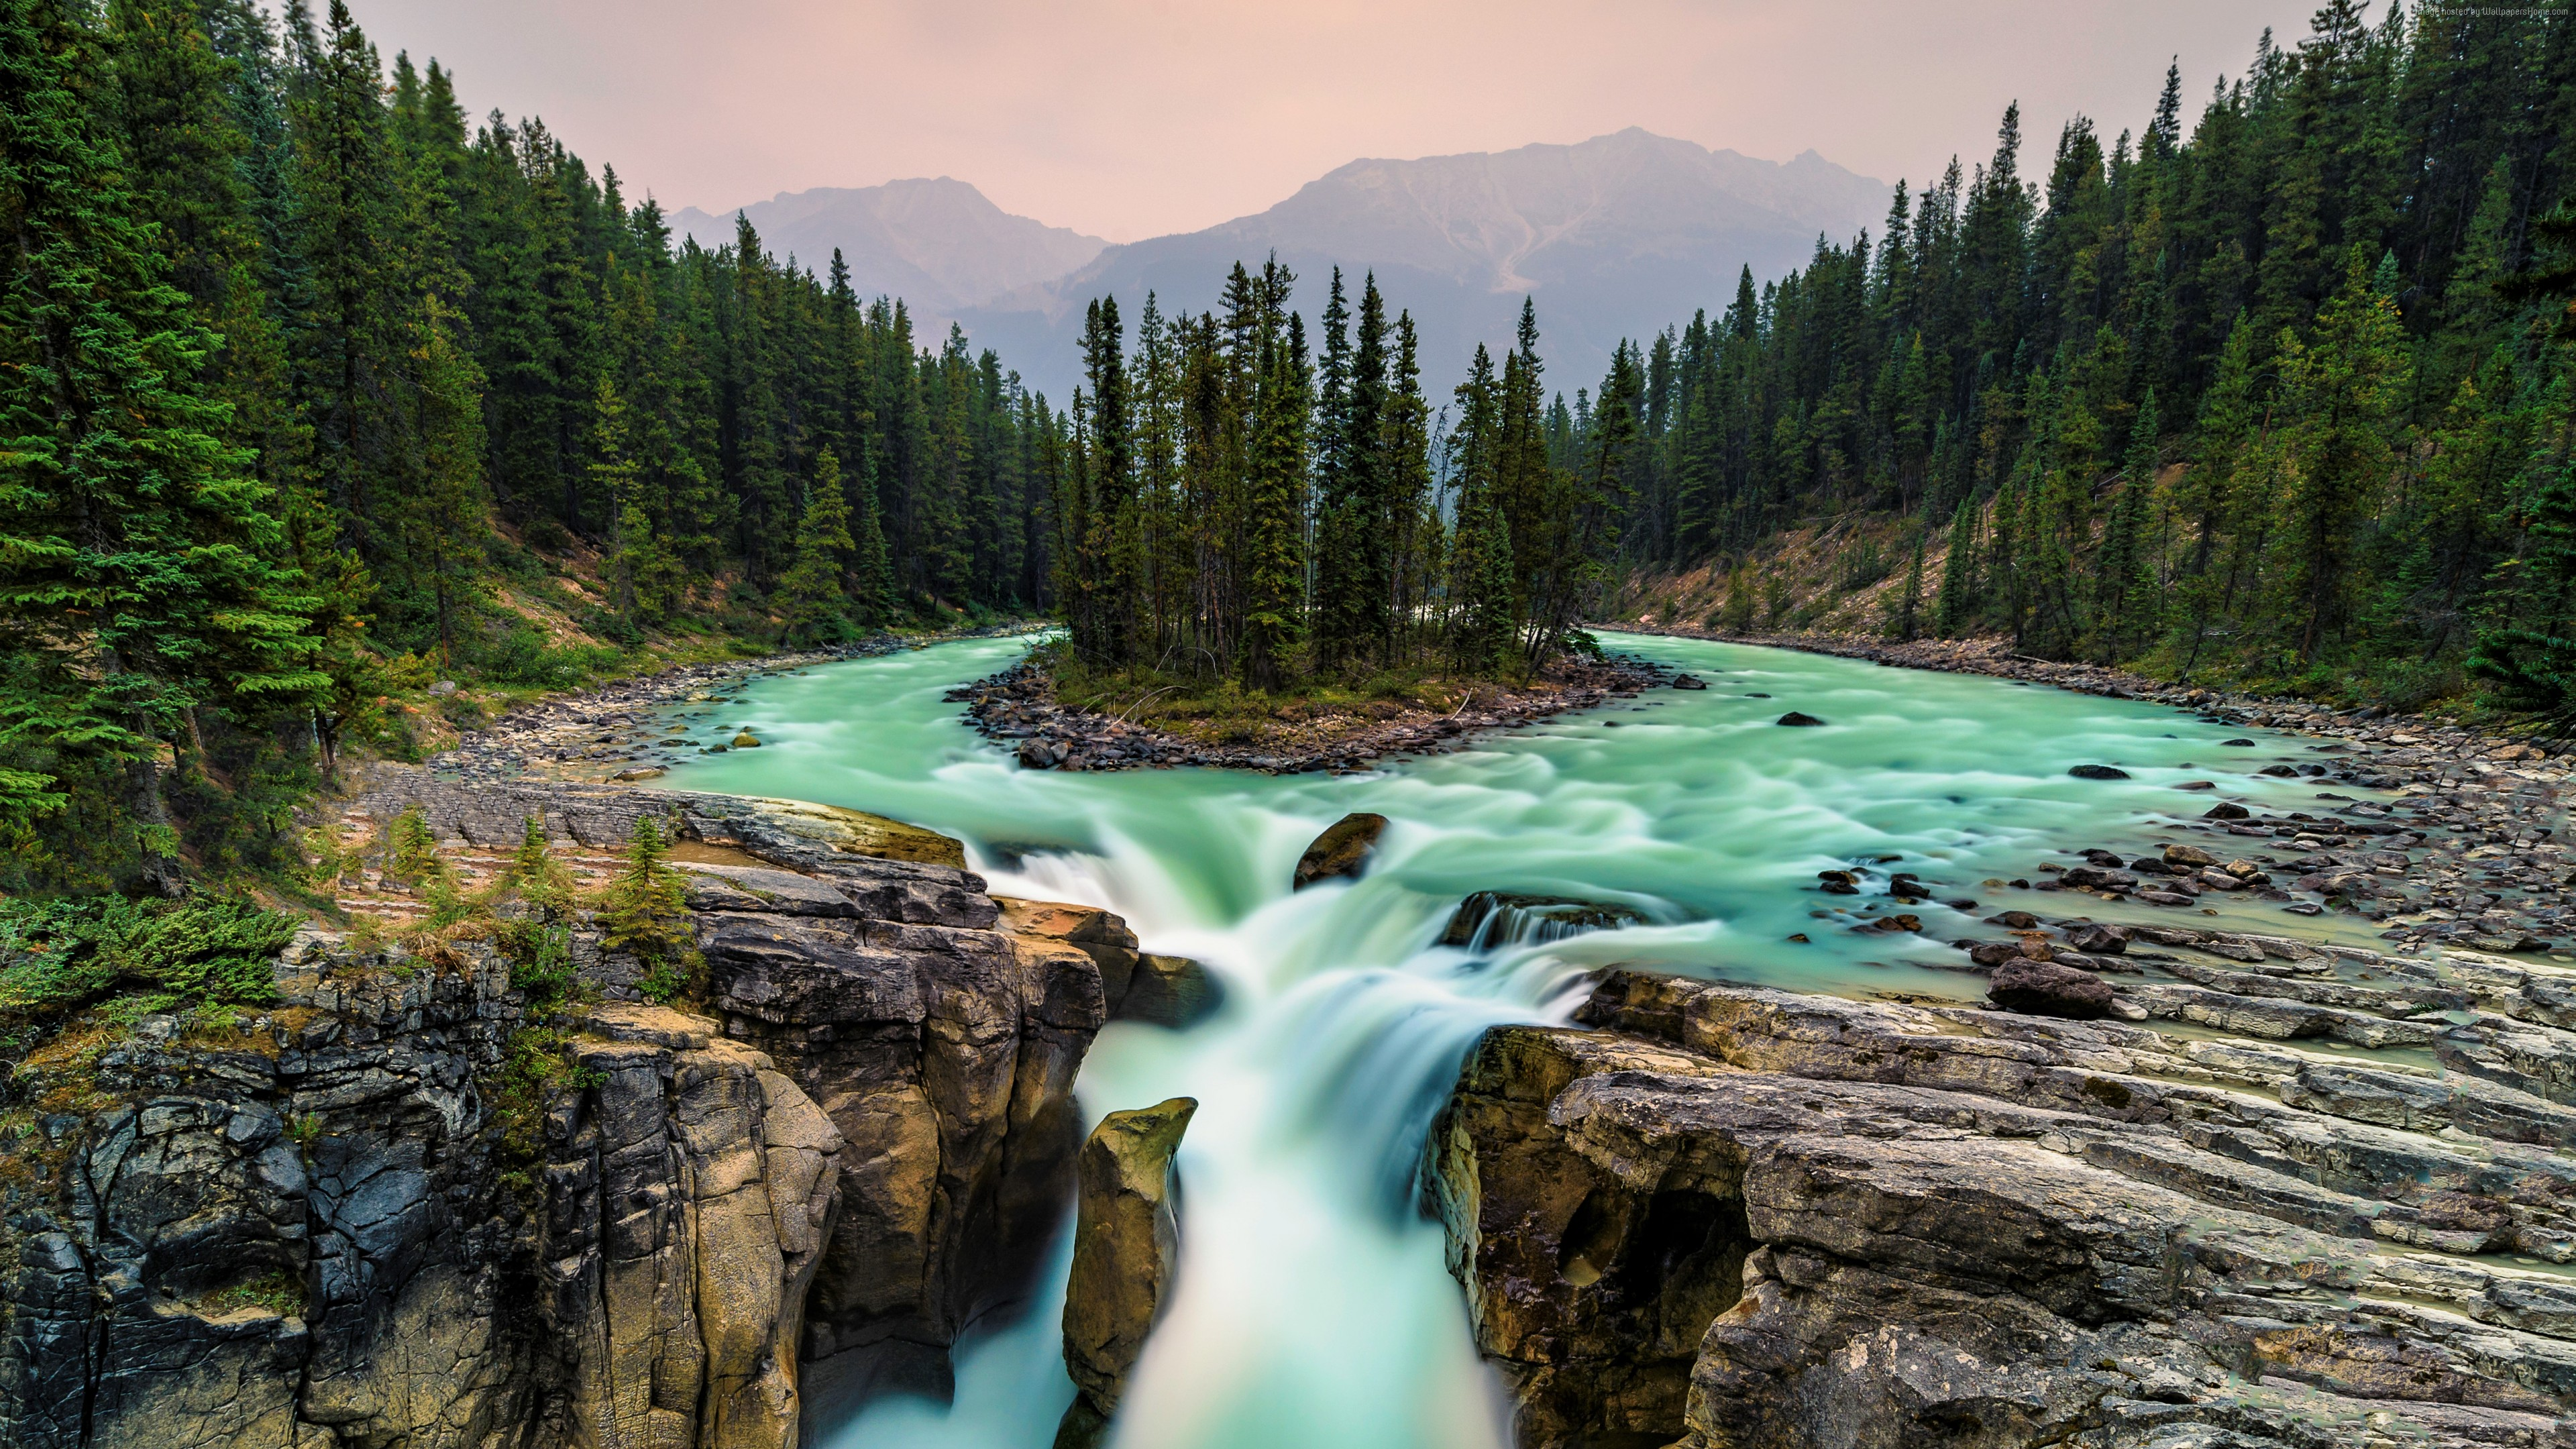 Wallpaper Jasper National Park, Canada, waterfall, 5K, Travel